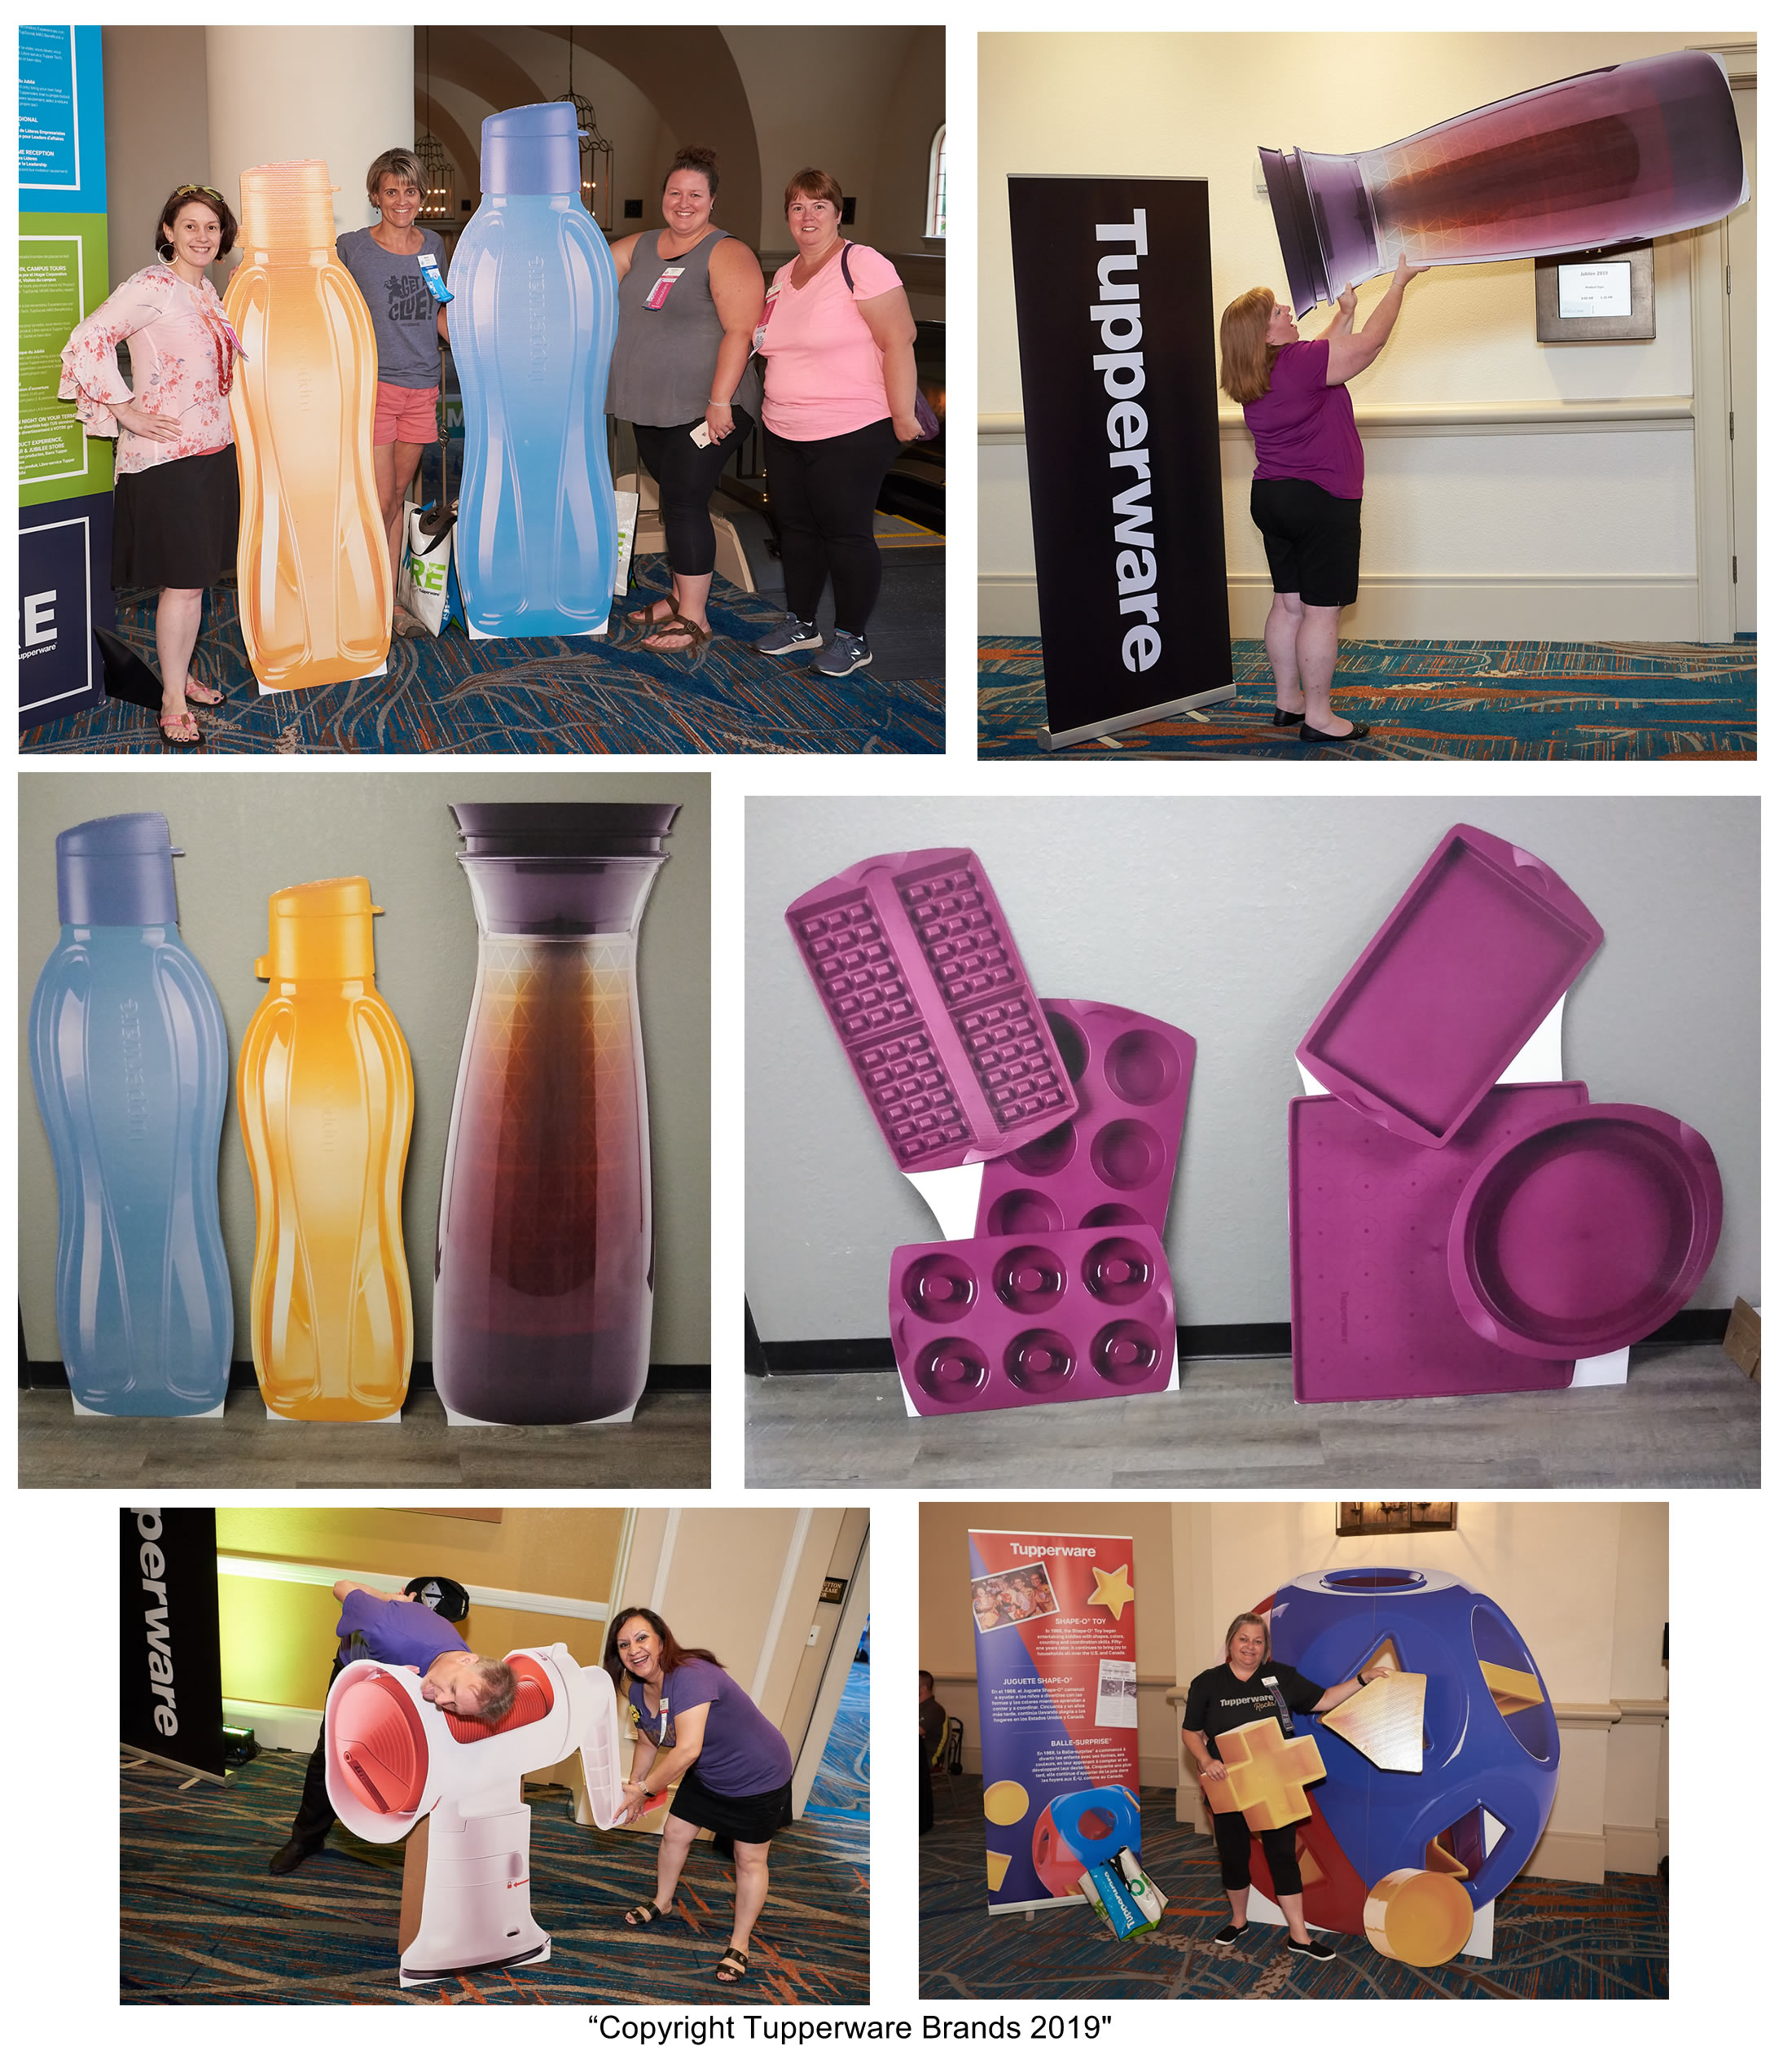 Tupperware Custom Cardboard Cutout Standups for Tradeshows and Events